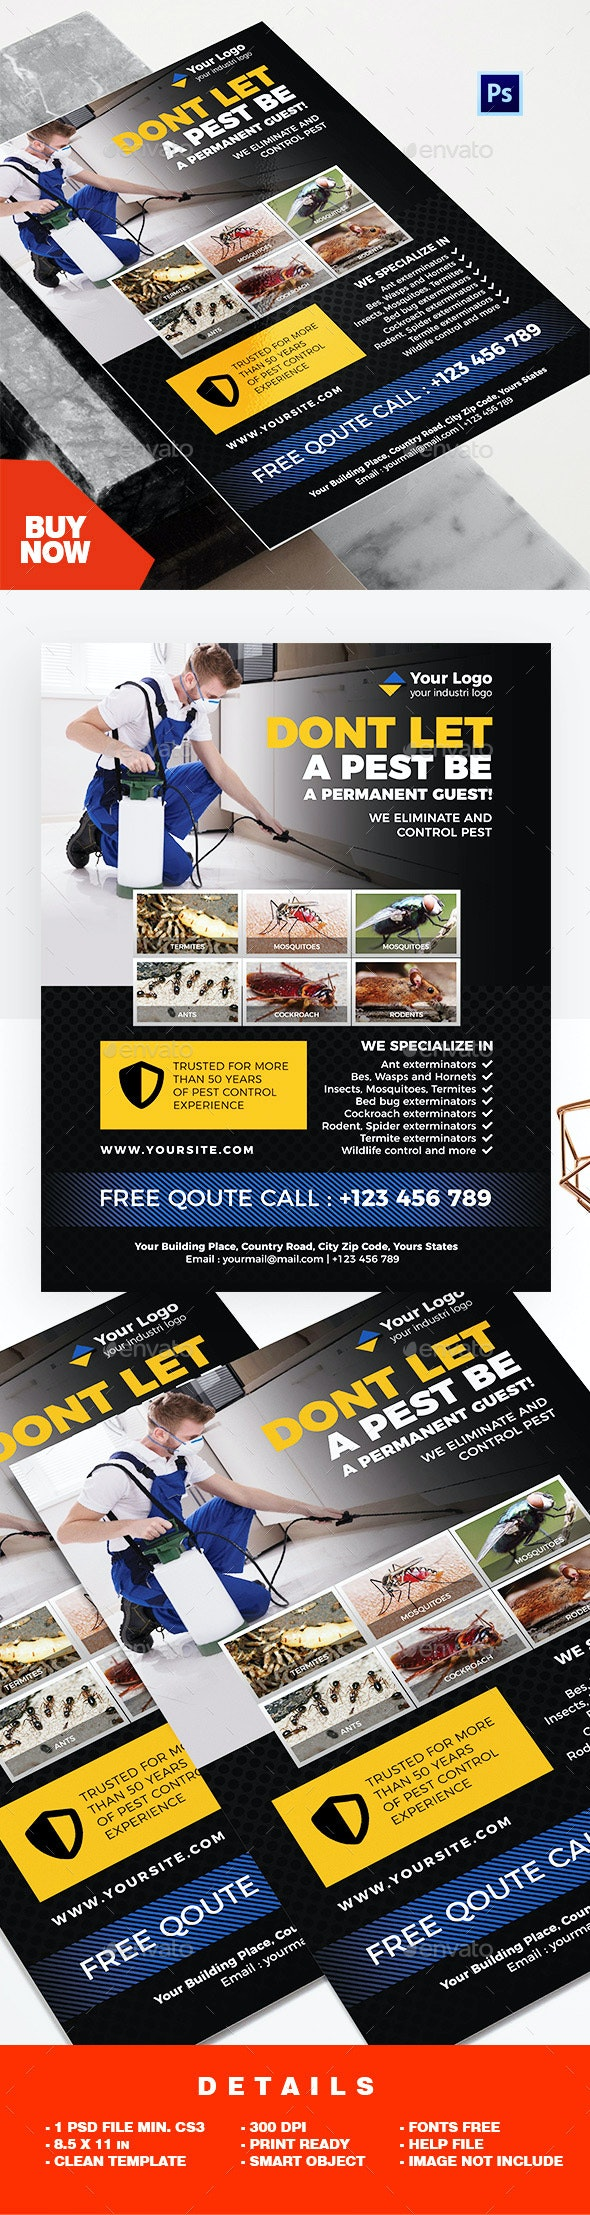 Professional Pest Control Services Flyer - Corporate Flyers